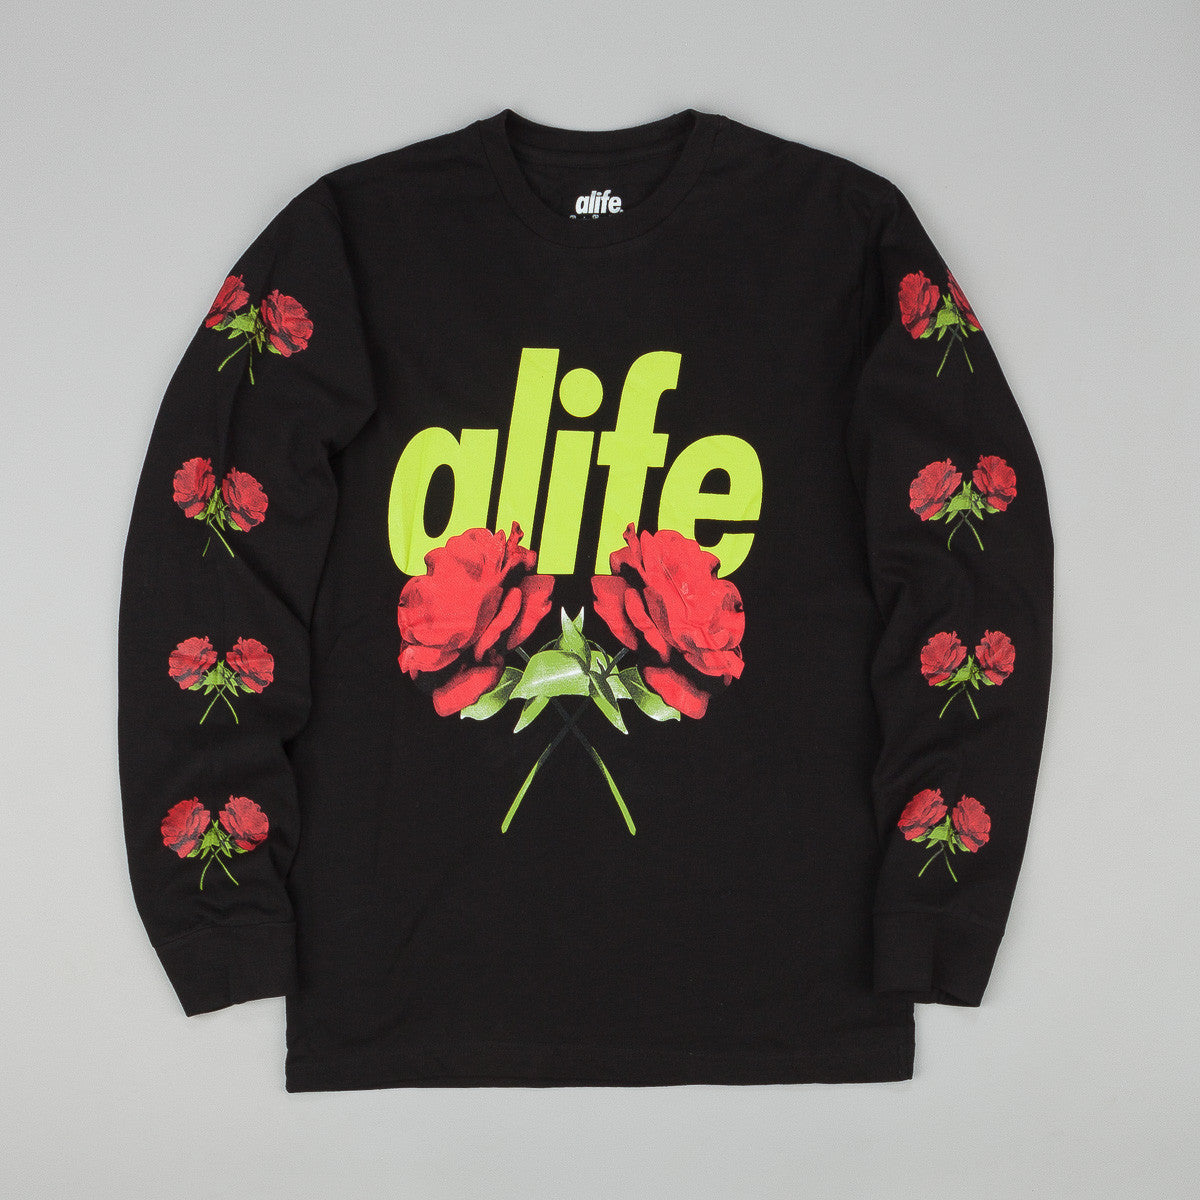 Alife Roses Long Sleeve T-Shirt - Black